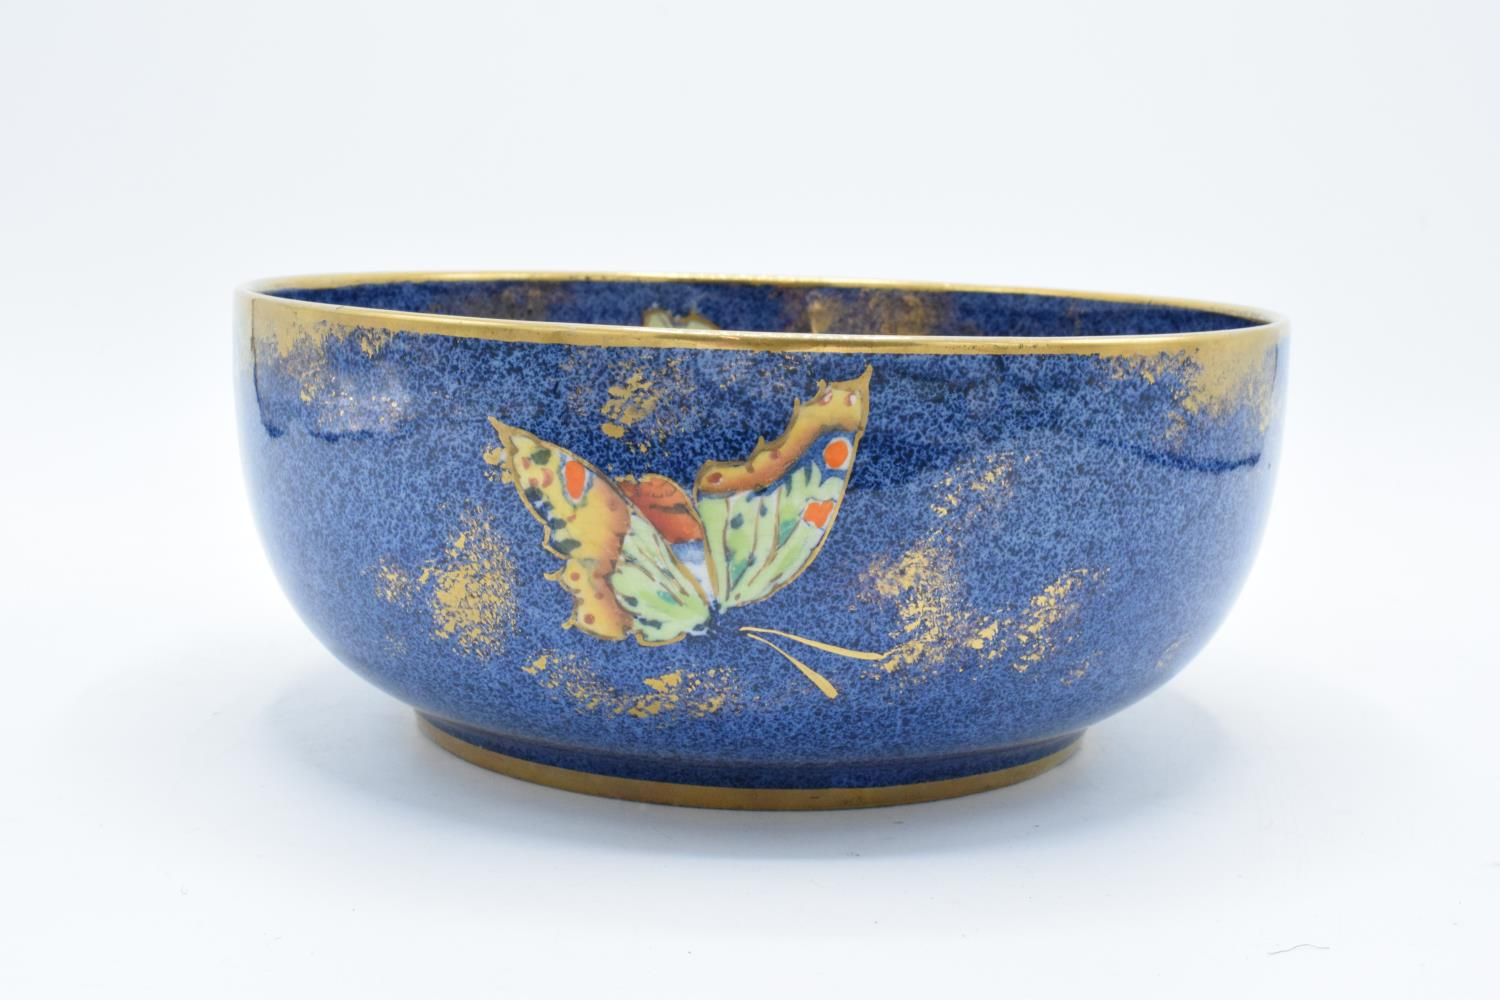 Rialto Ware pottery bowl with butterflies decoration. In good condition with no obvious damage or - Image 2 of 6